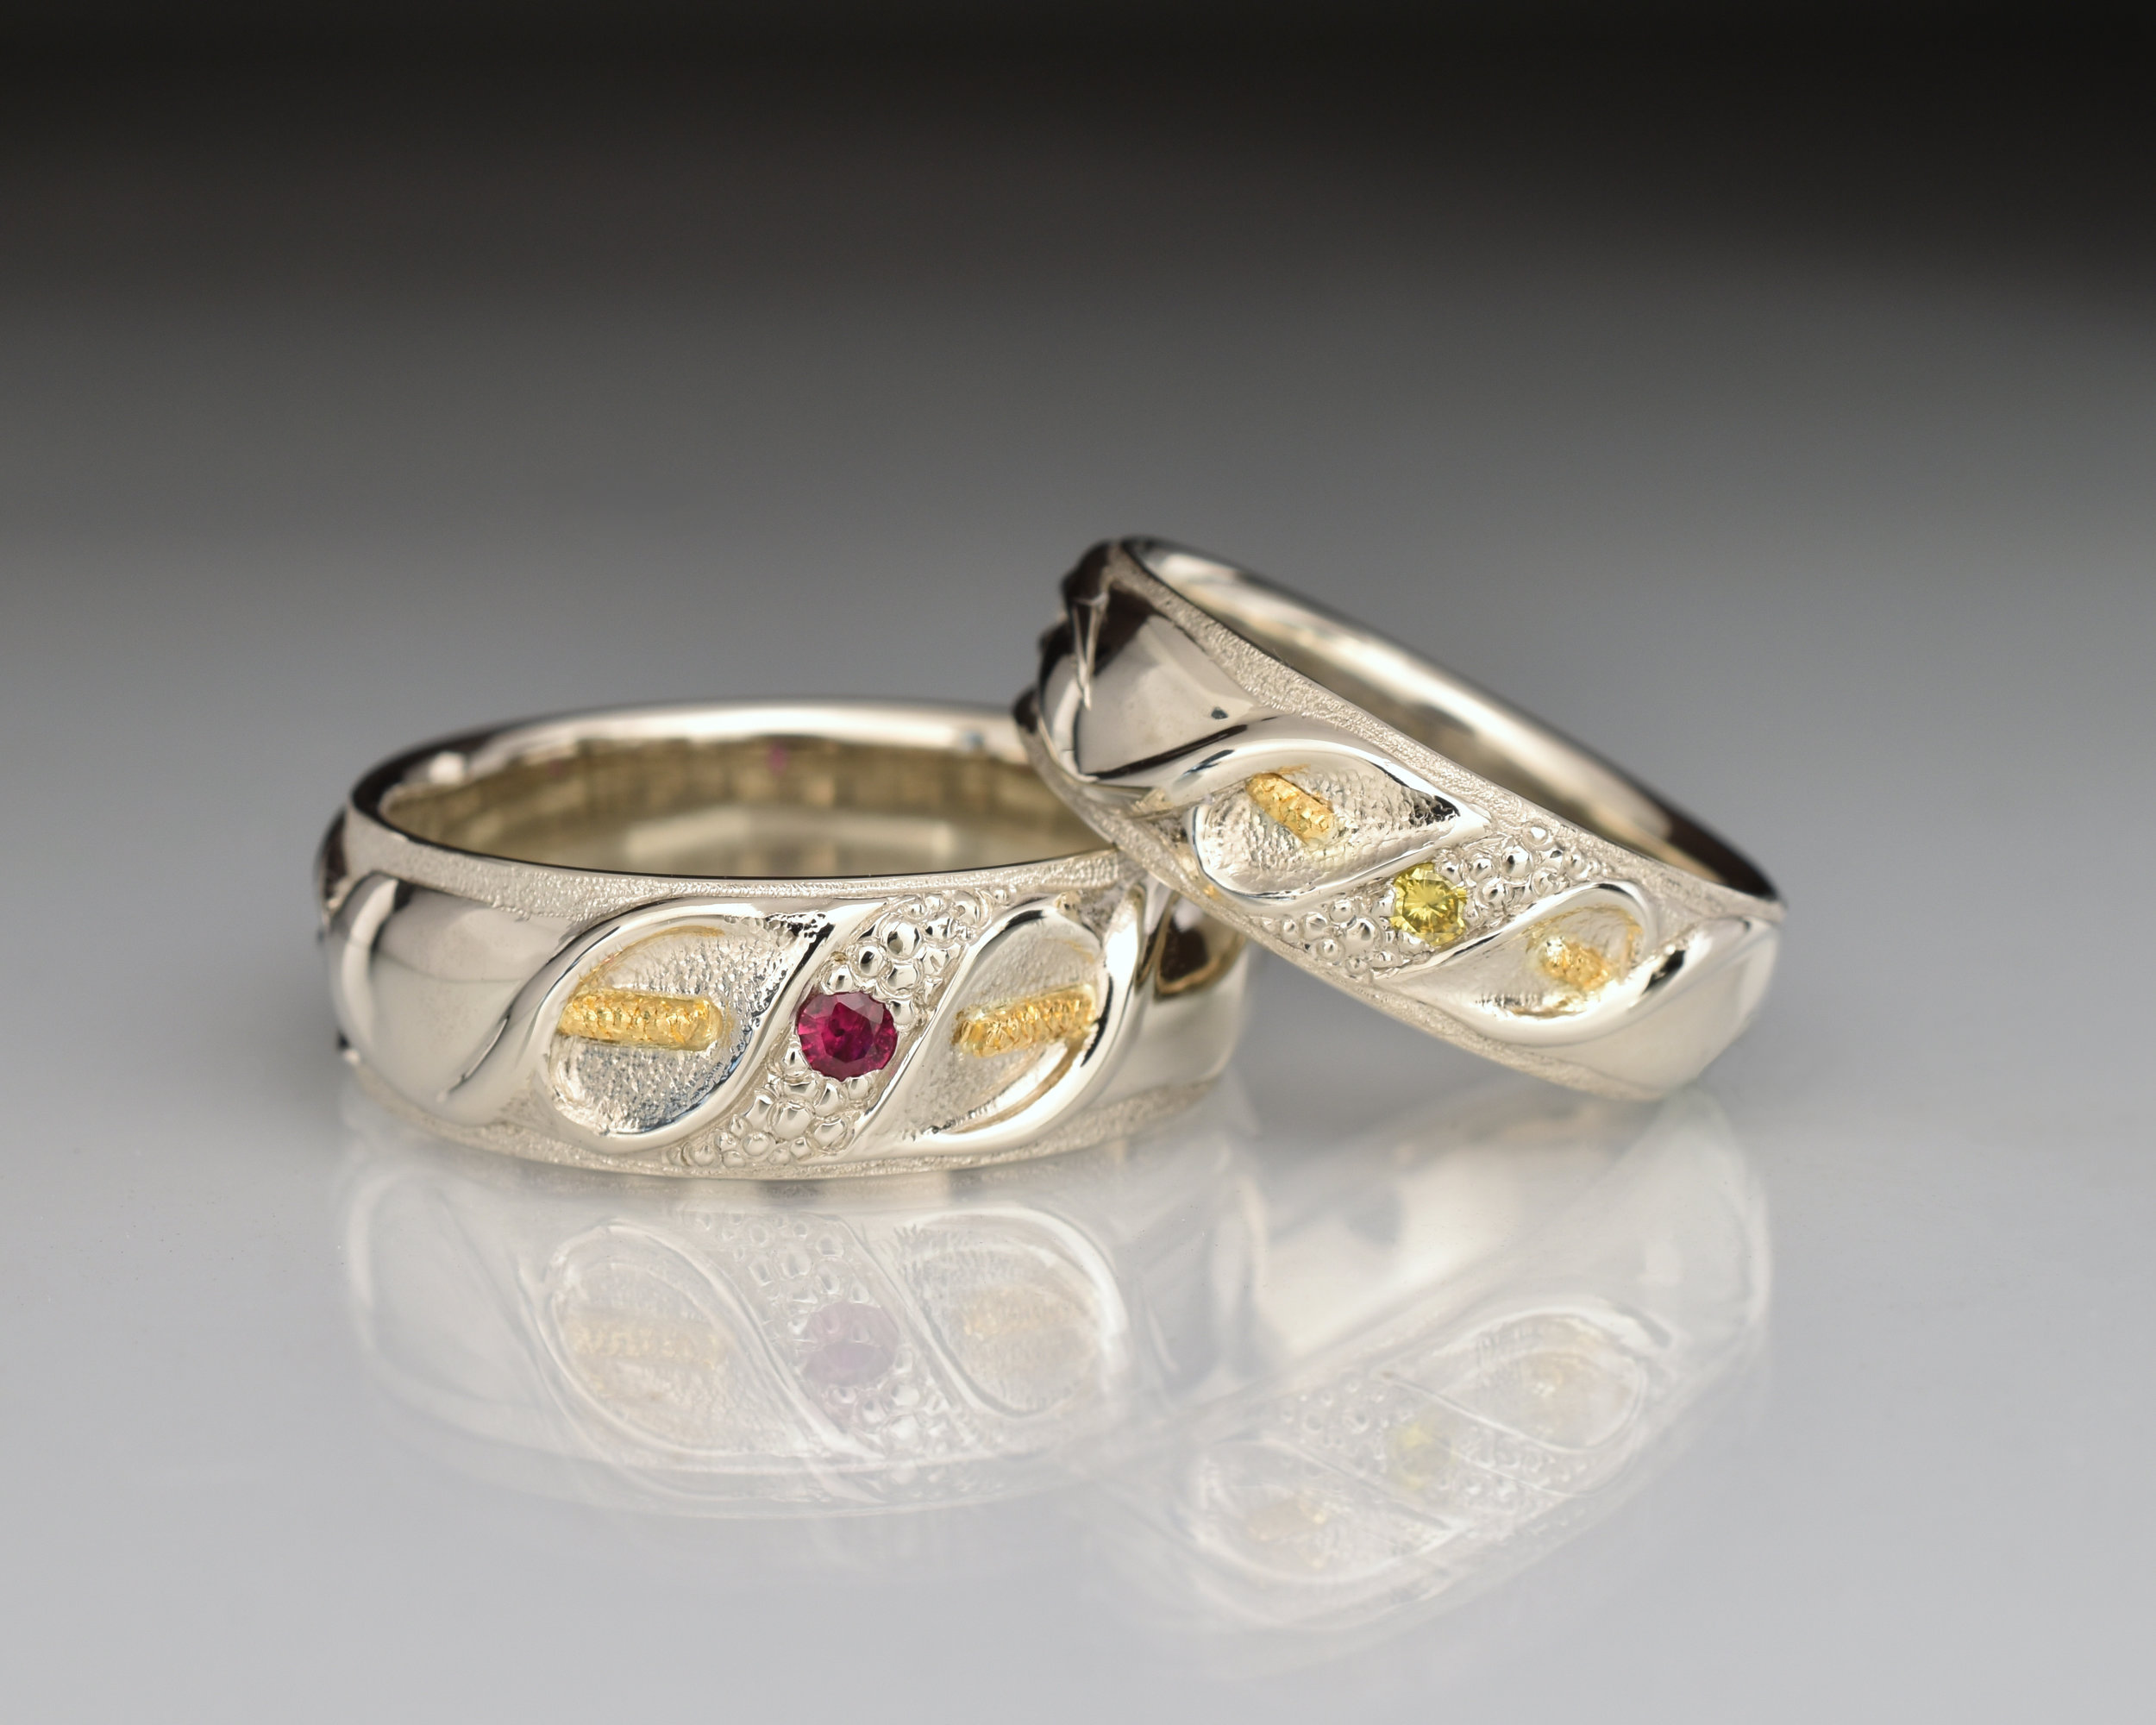 18k White Gold wedding bands, inspired by the Calla Lily. Gents band set with ruby and Ladies band set with yellow diamond.